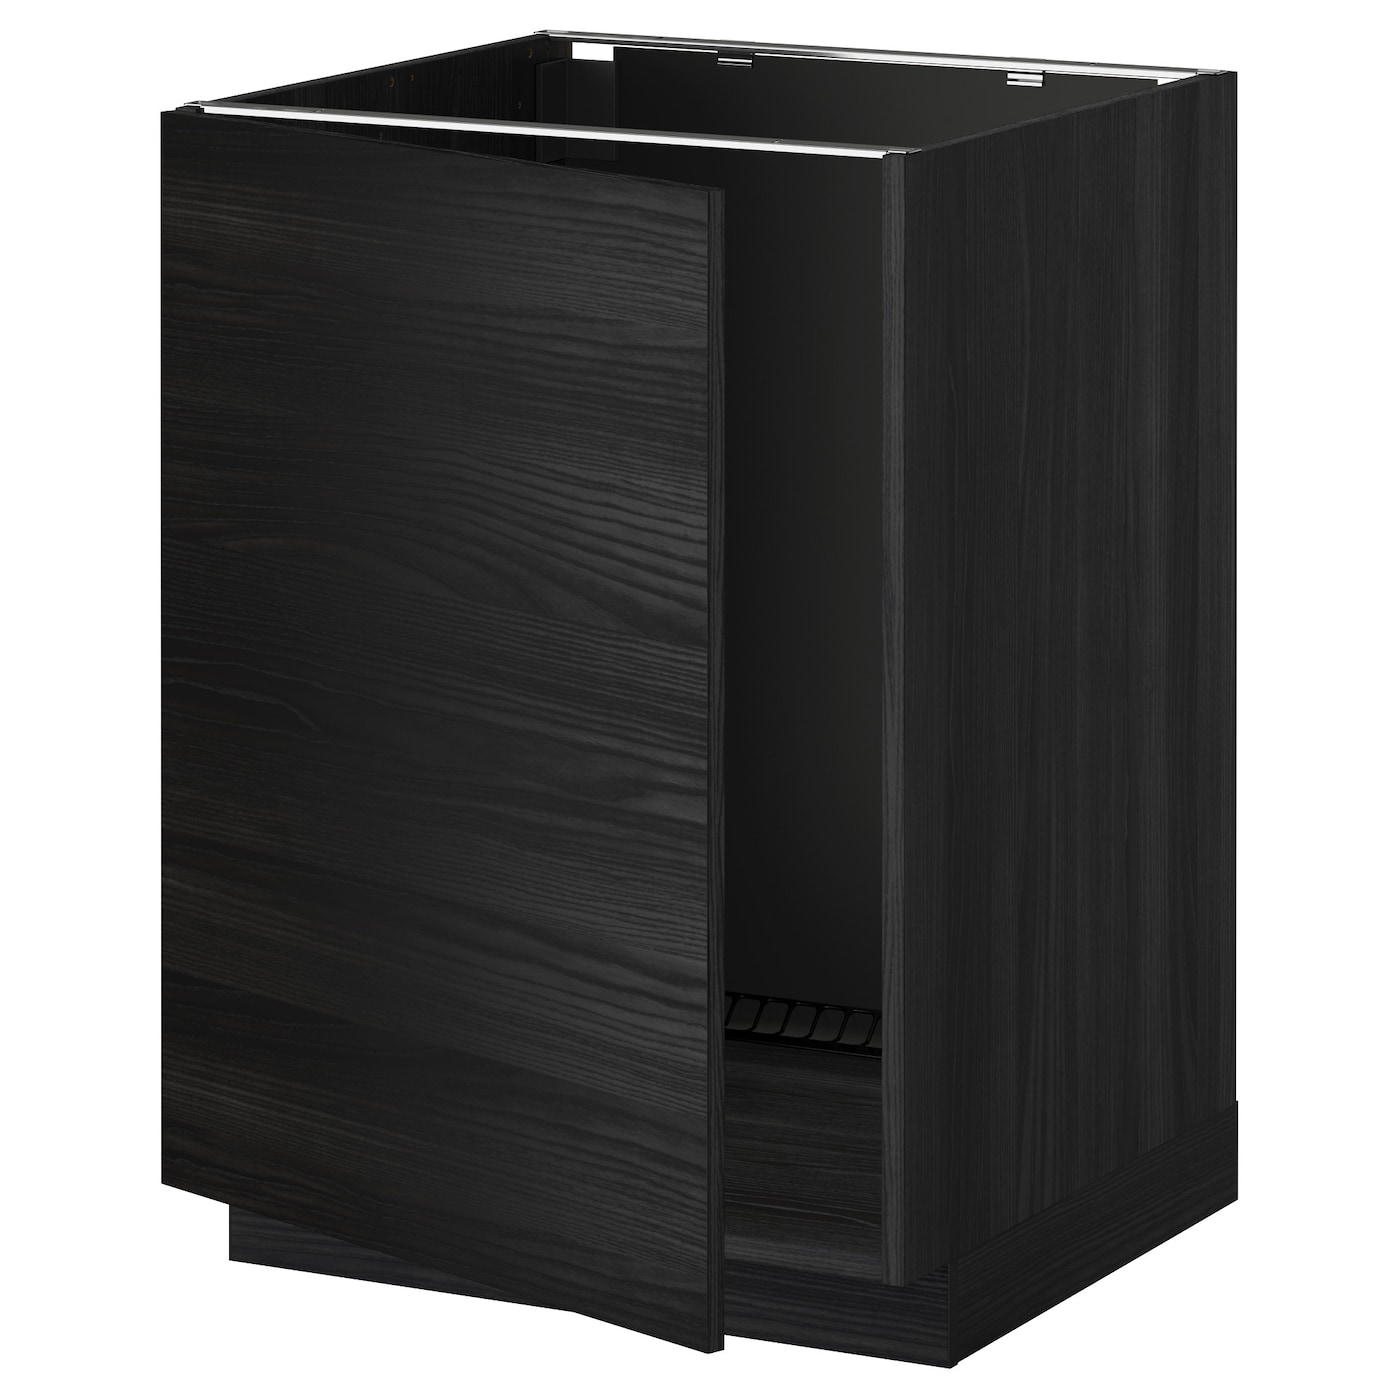 black kitchen base cabinets metod base cabinet for sink black tingsryd black 60 x 60 12375